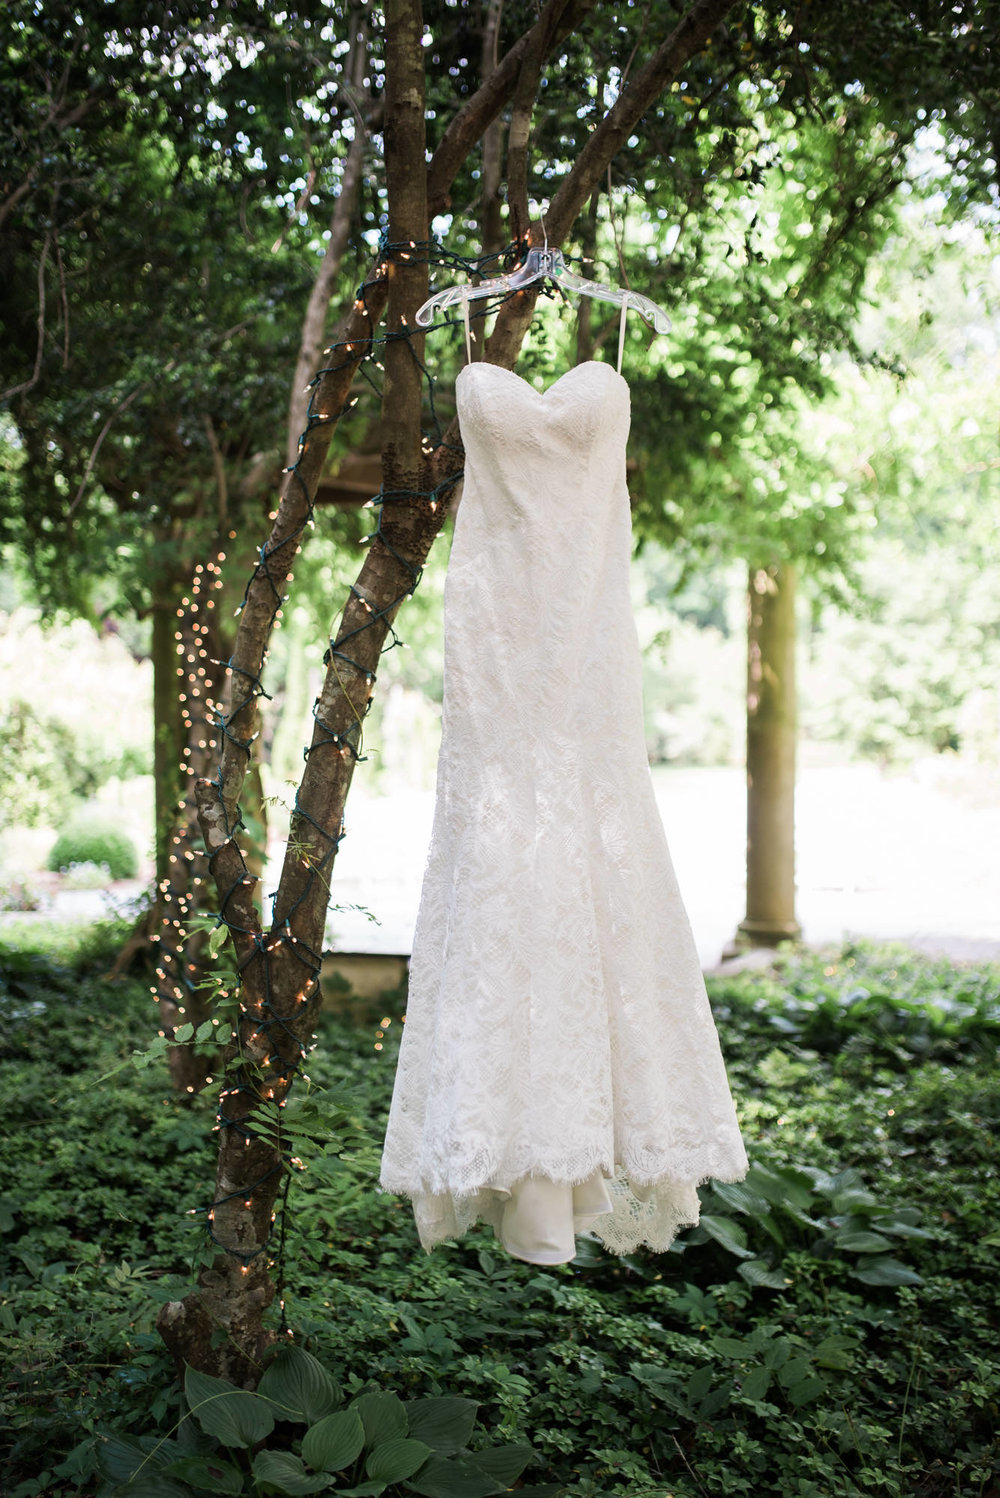 Atlanta-wedding-dress-1.jpg